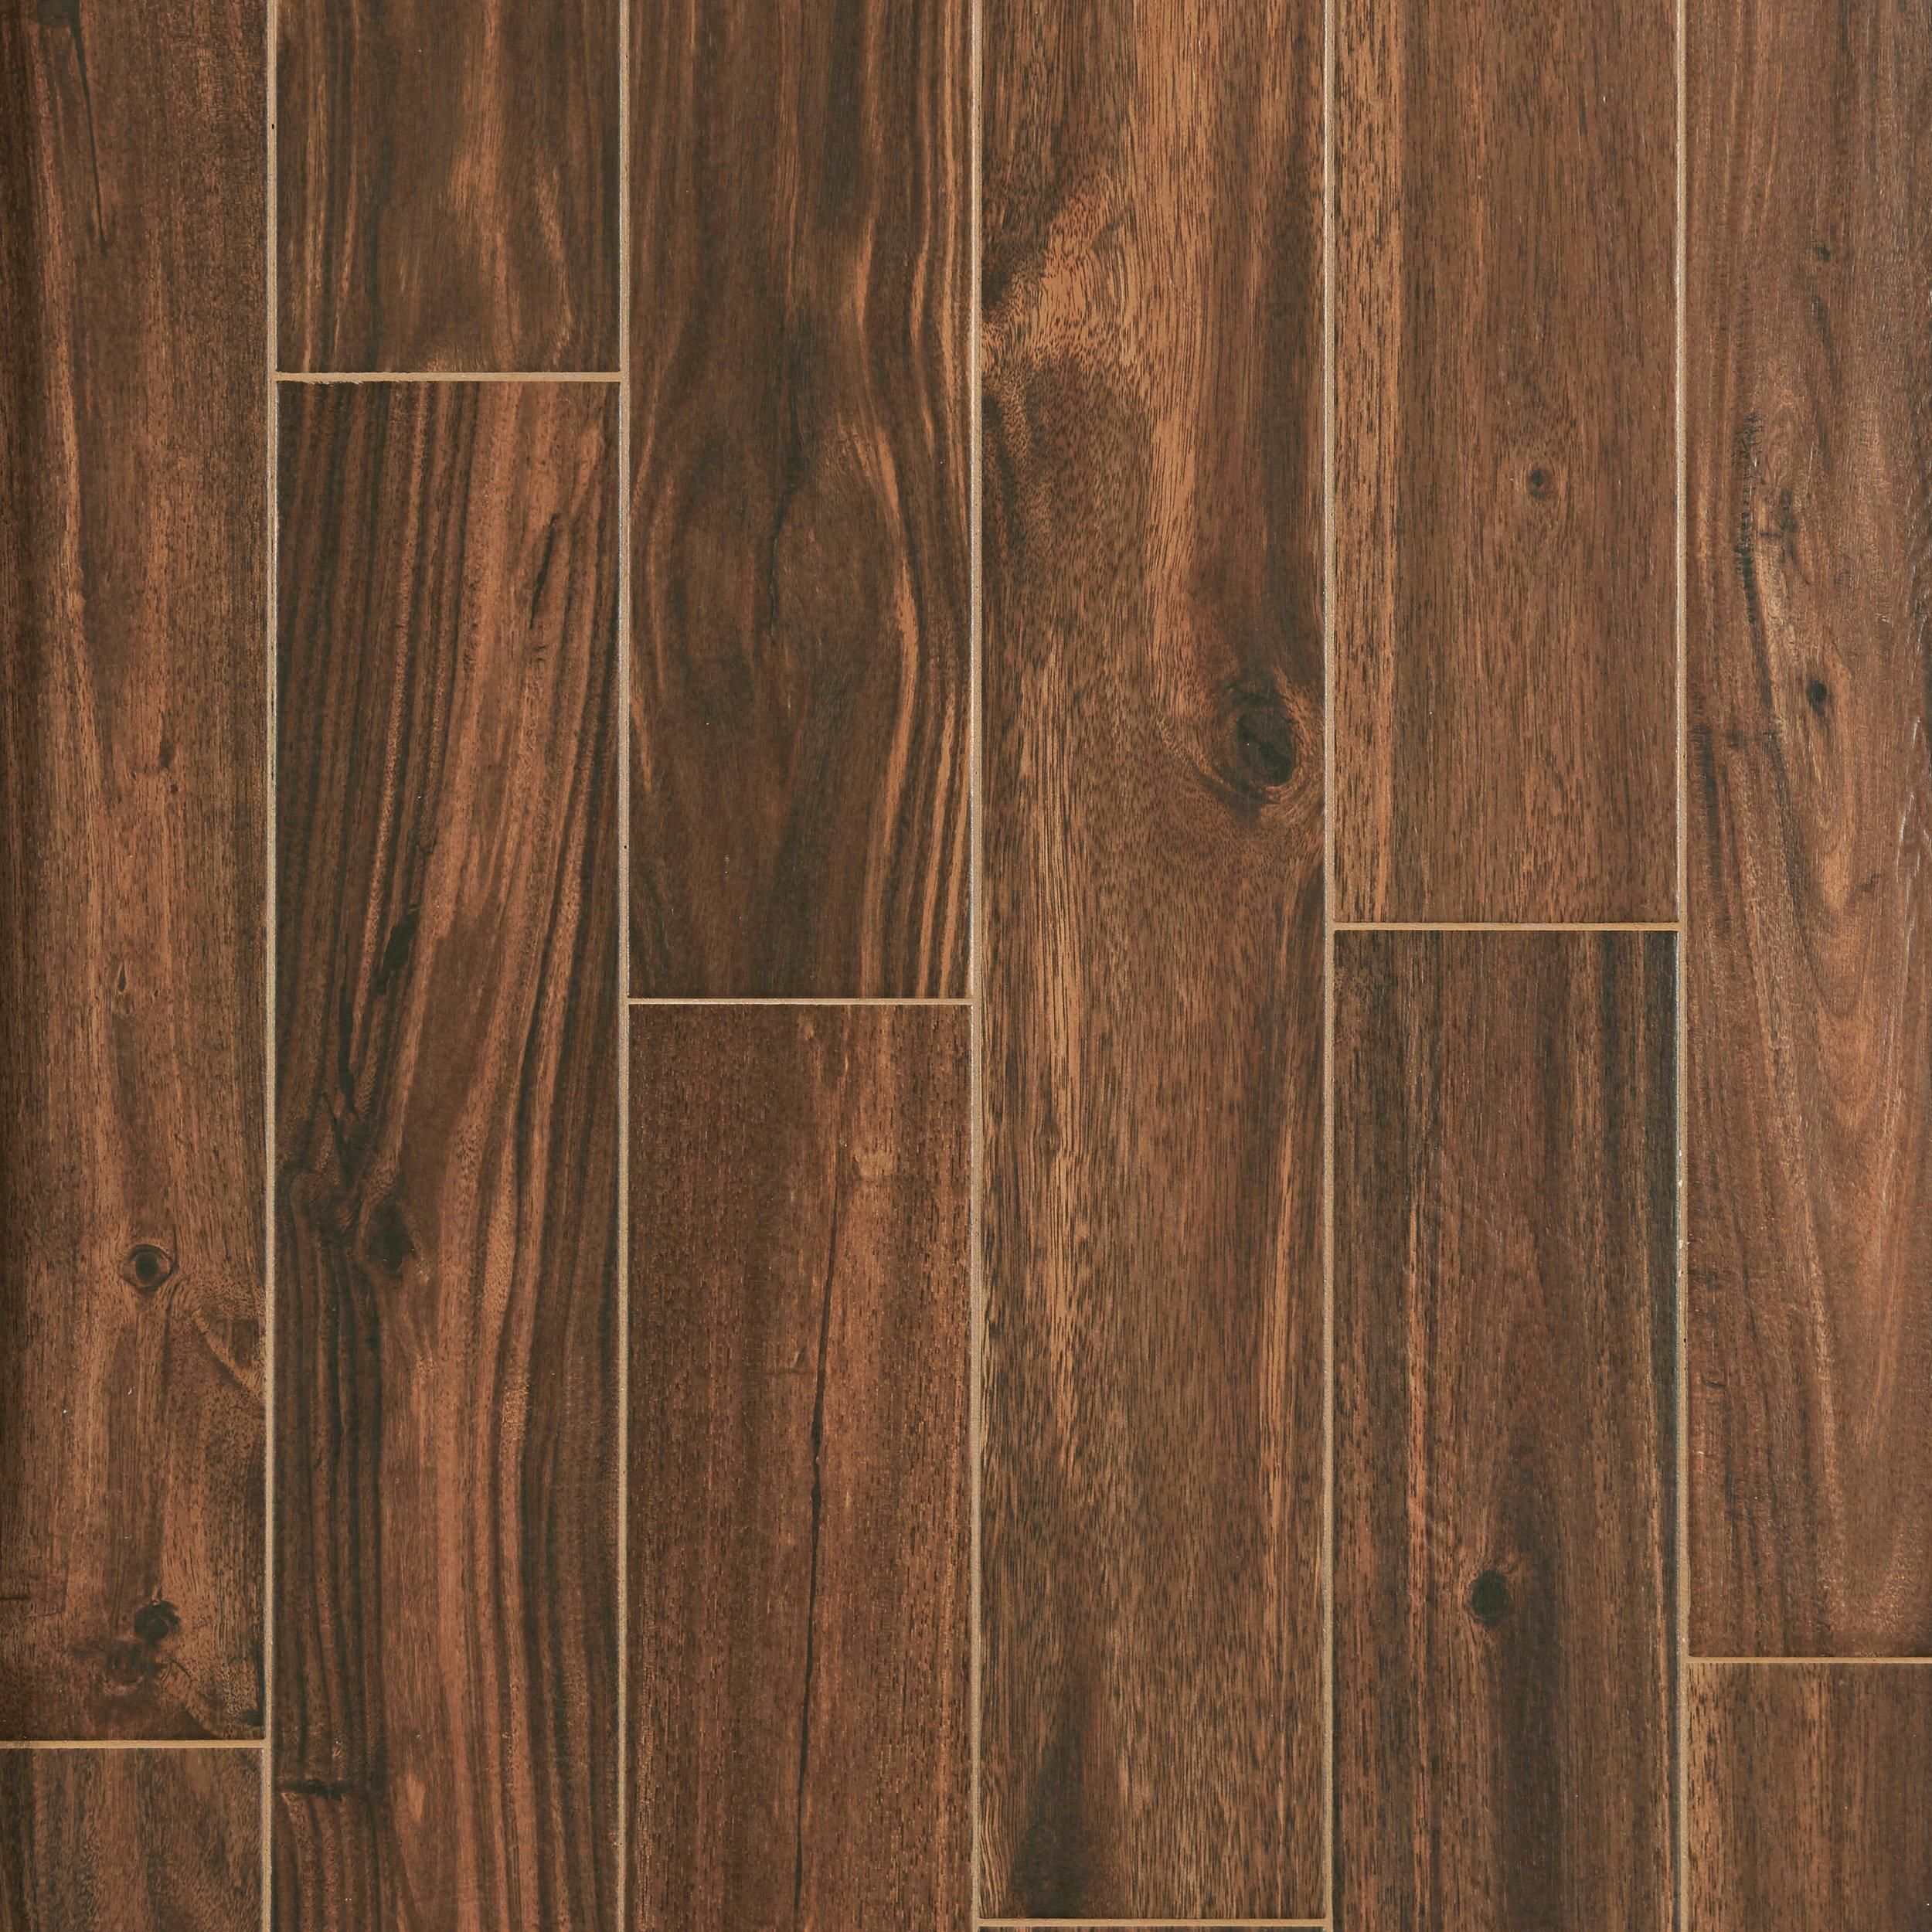 Woodhurst Amber Wood Plank Porcelain Tile Products In 2019